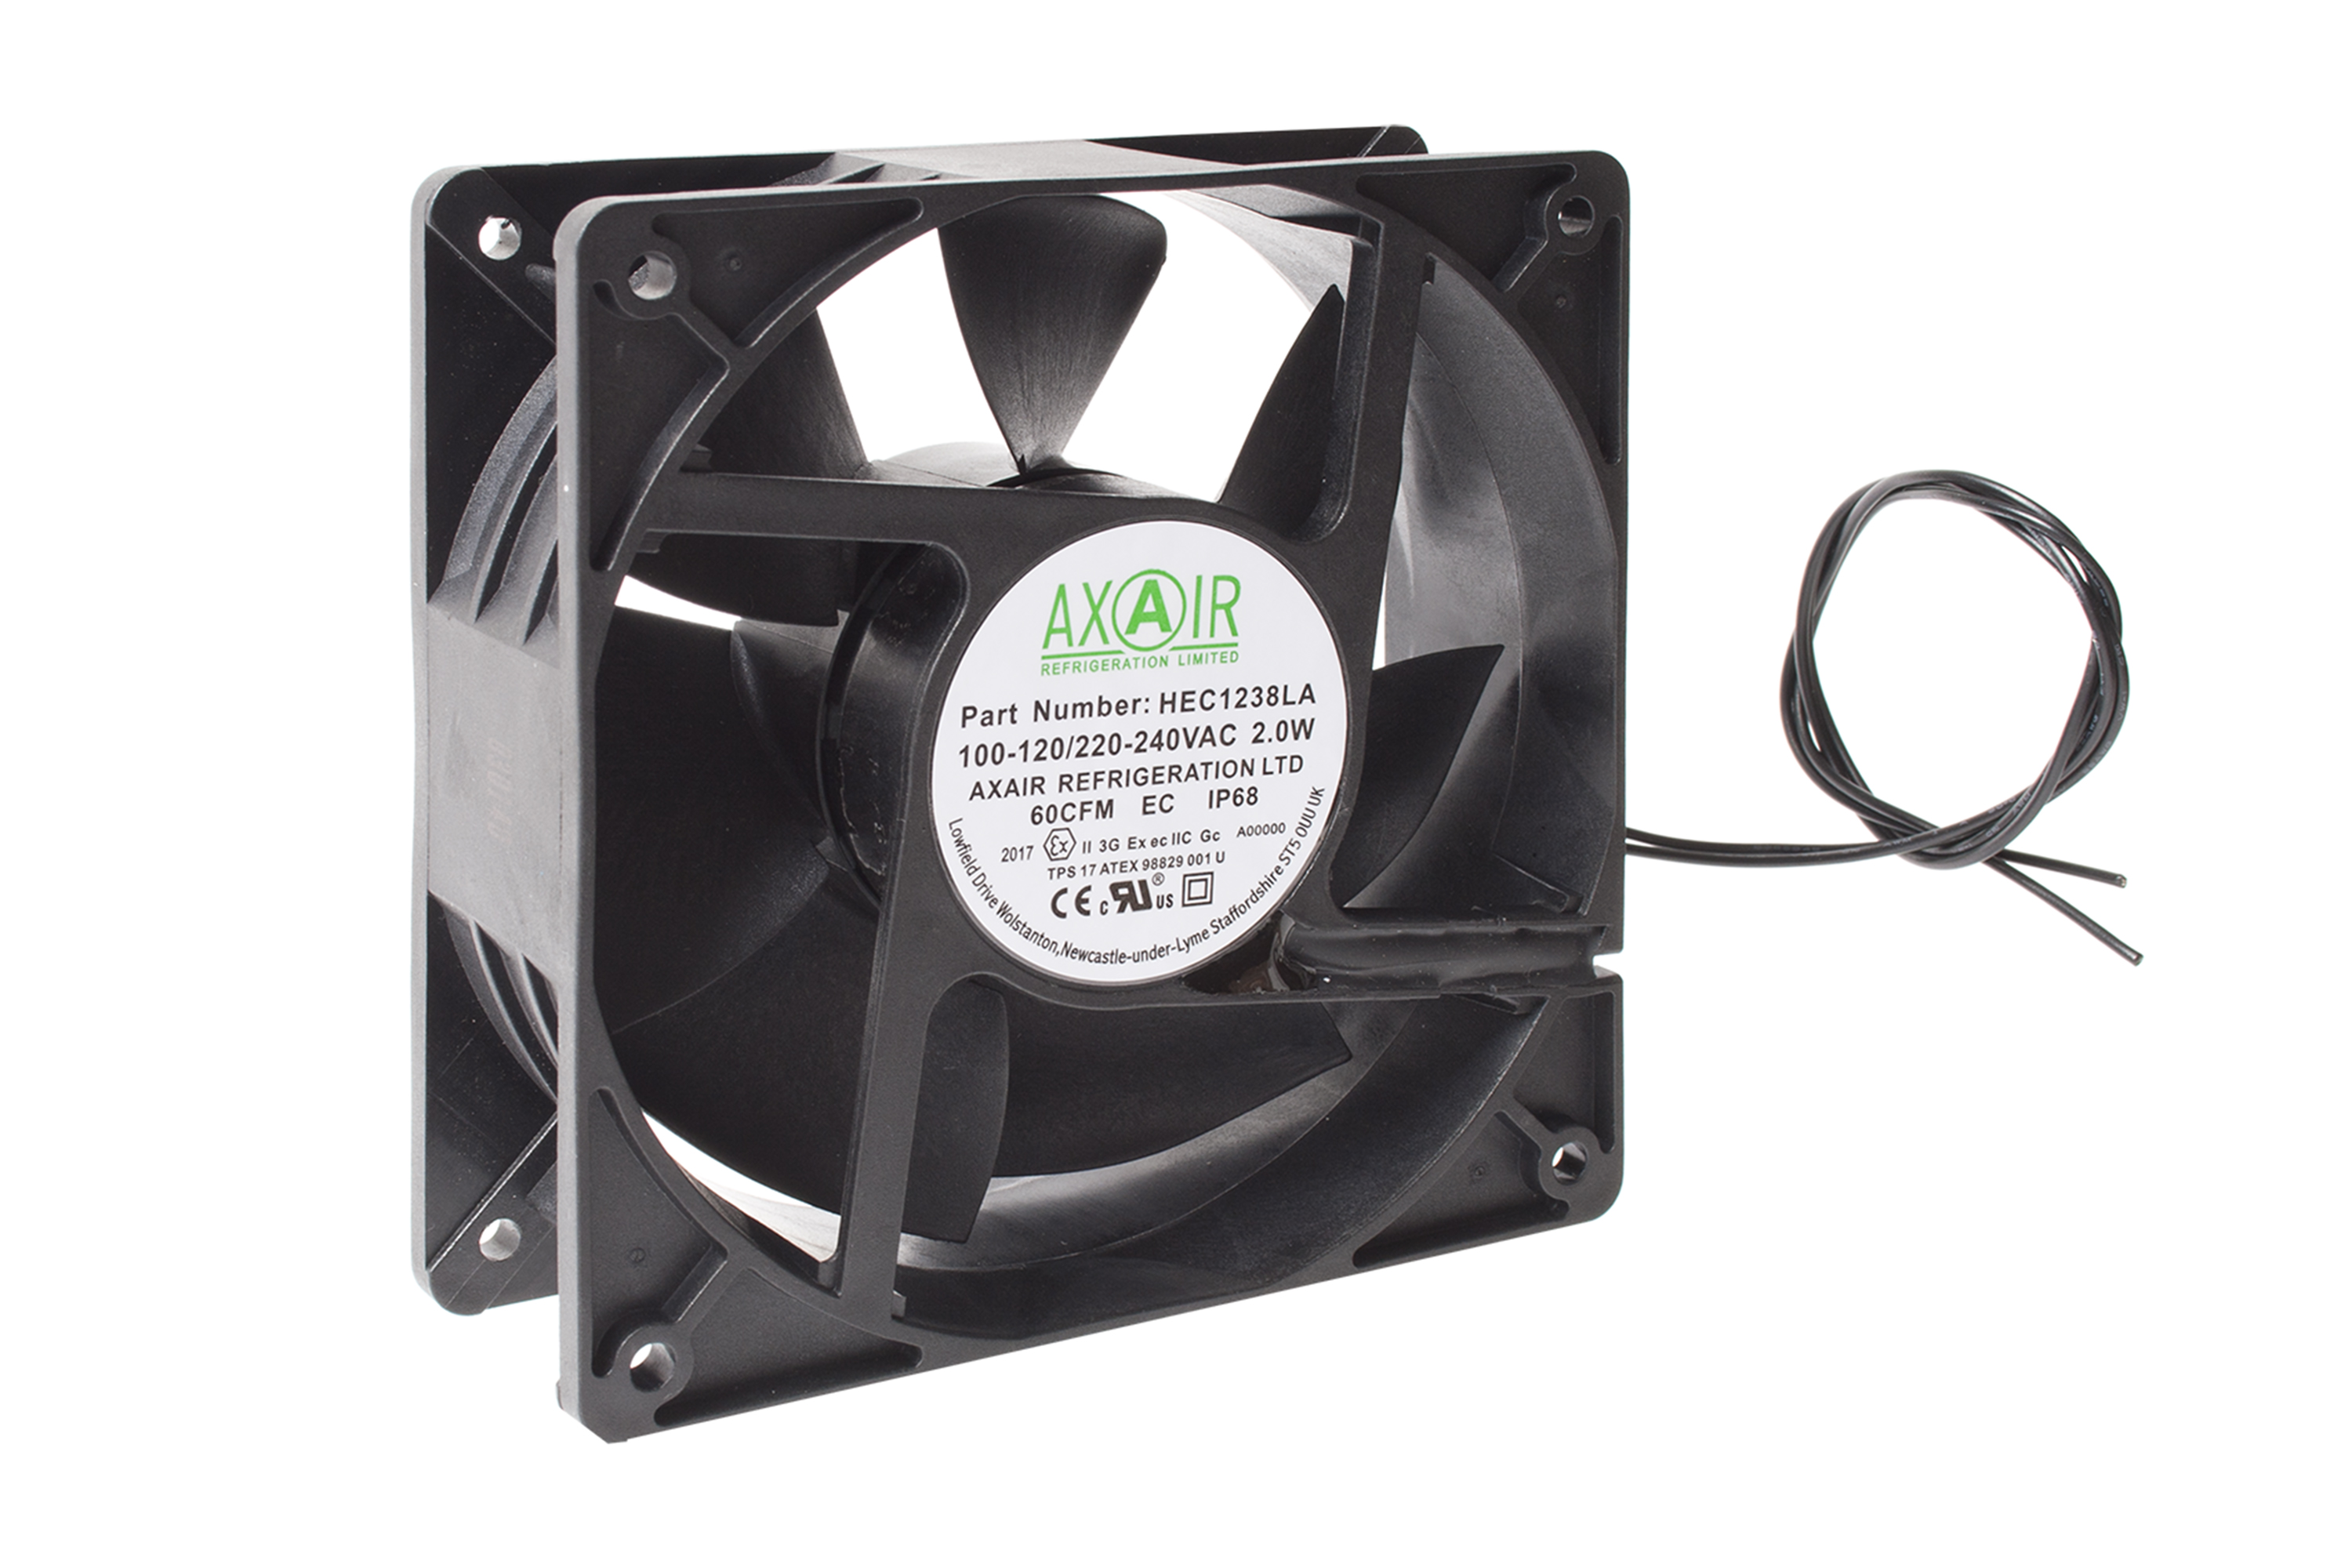 Explosion Proof Fan >> Explosion Proof Enclosure Cooling